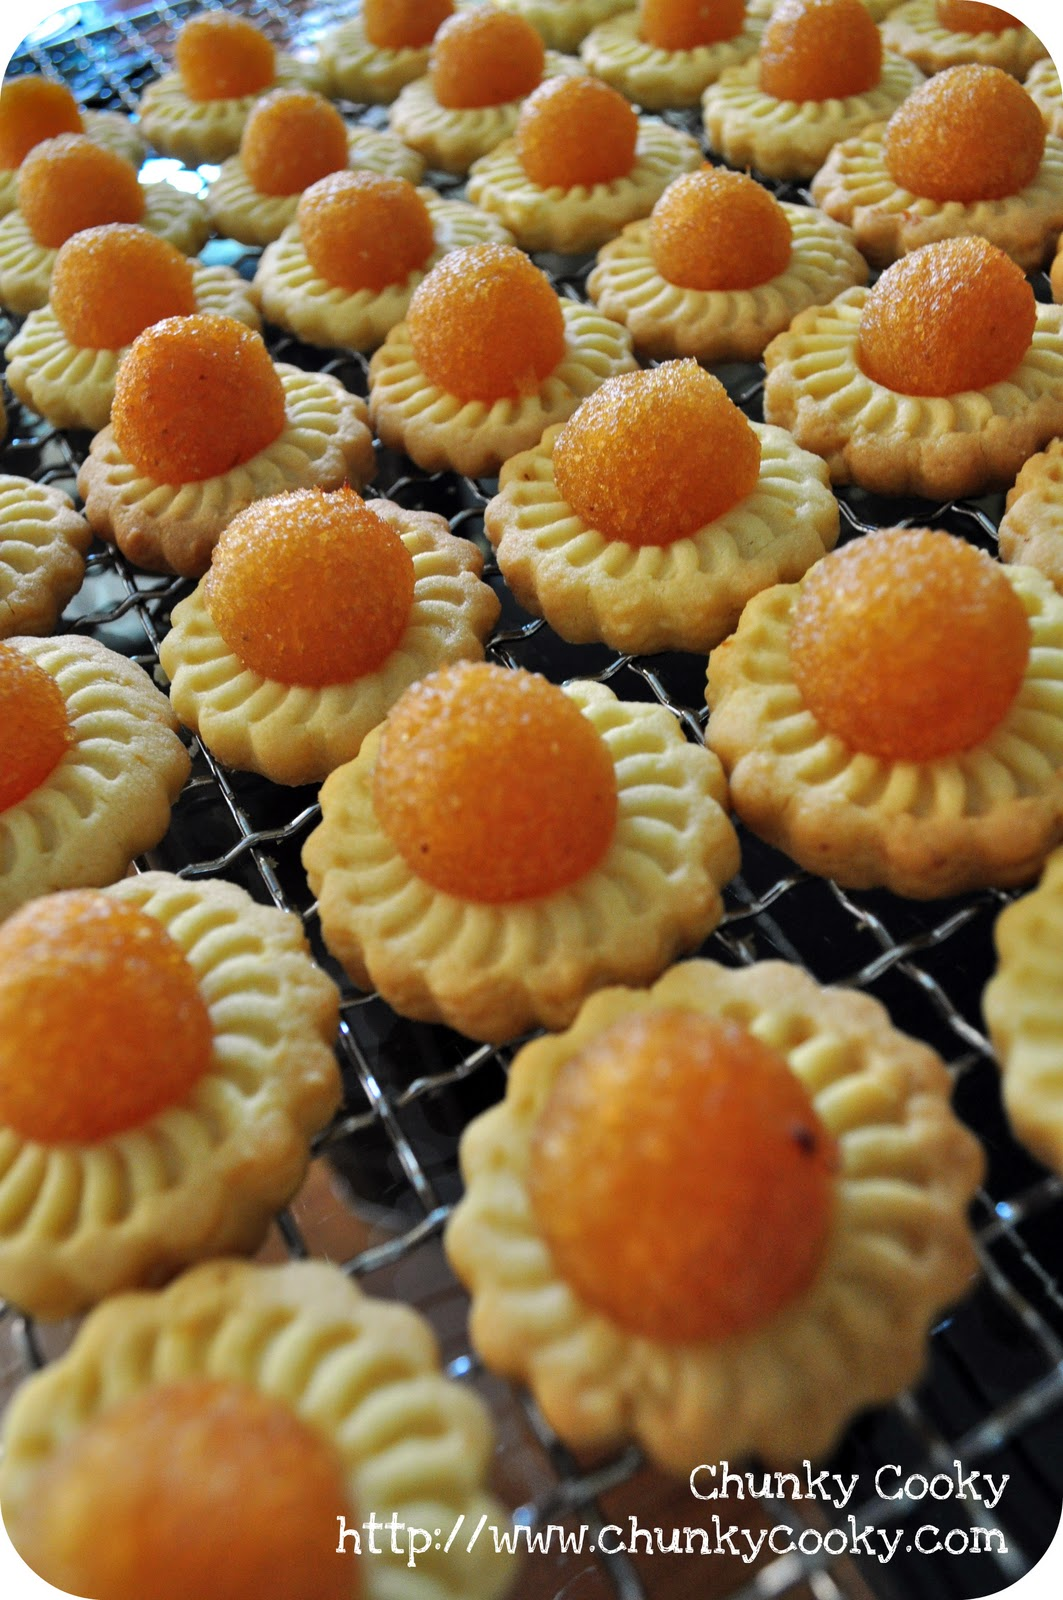 Recipes : Pineapple Tarts & Butter Cookies